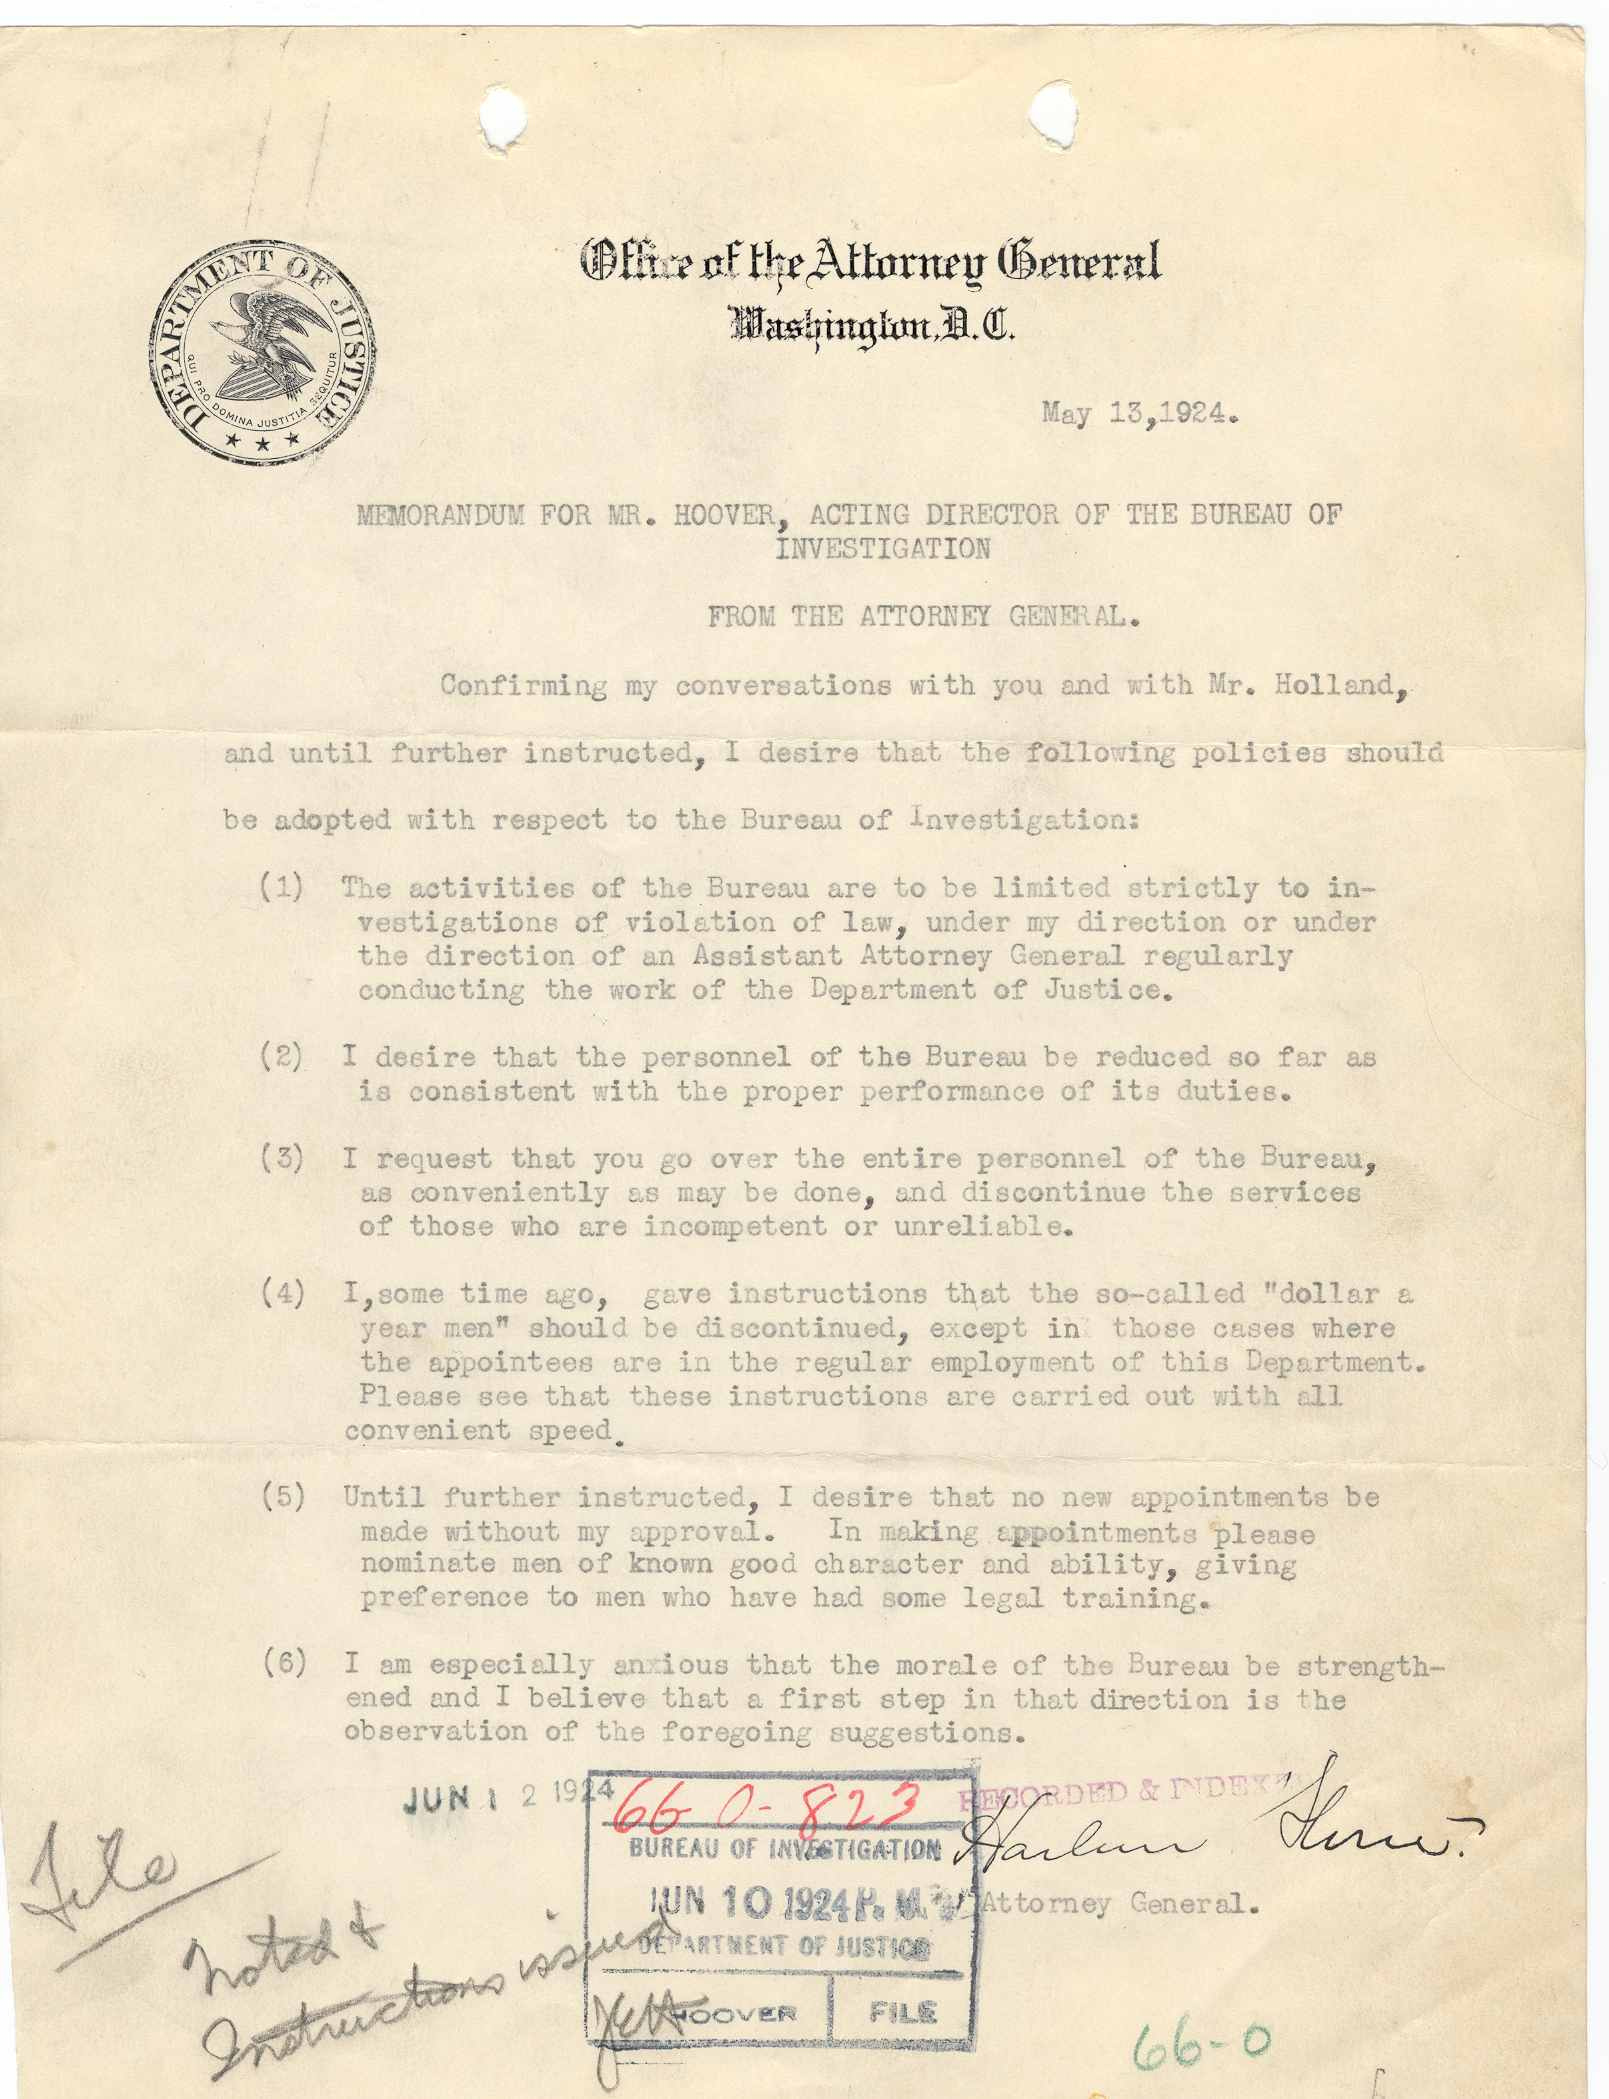 """From FBI files: An original copy of the agreement between incoming Director Hoover and Attorney General, Harlan Stone 1924. Hoover's initials """"JEH"""" and his inscription on issuing instructions to his underlings is shown."""